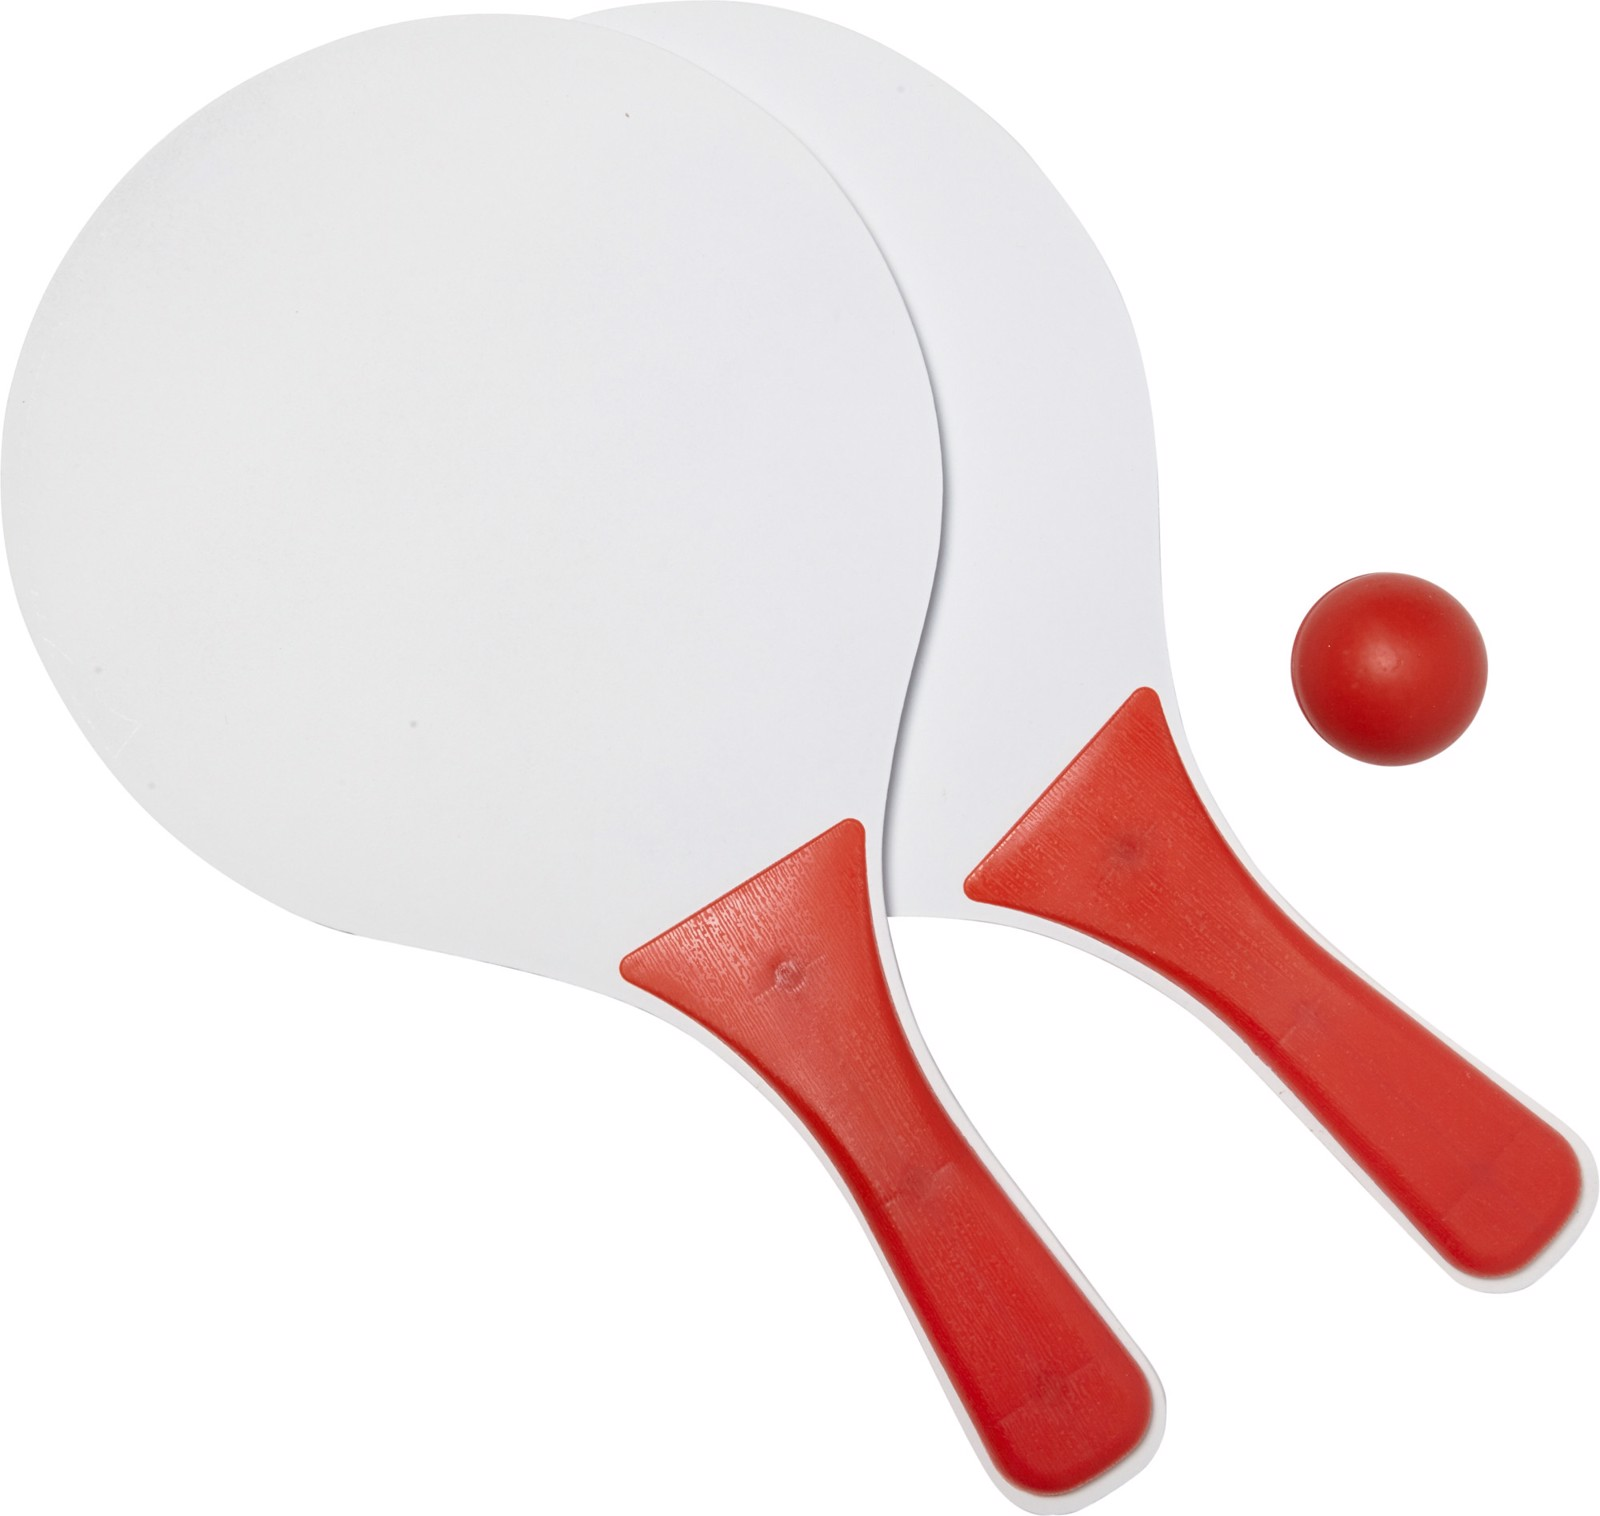 Wooden bat and ball set - Red